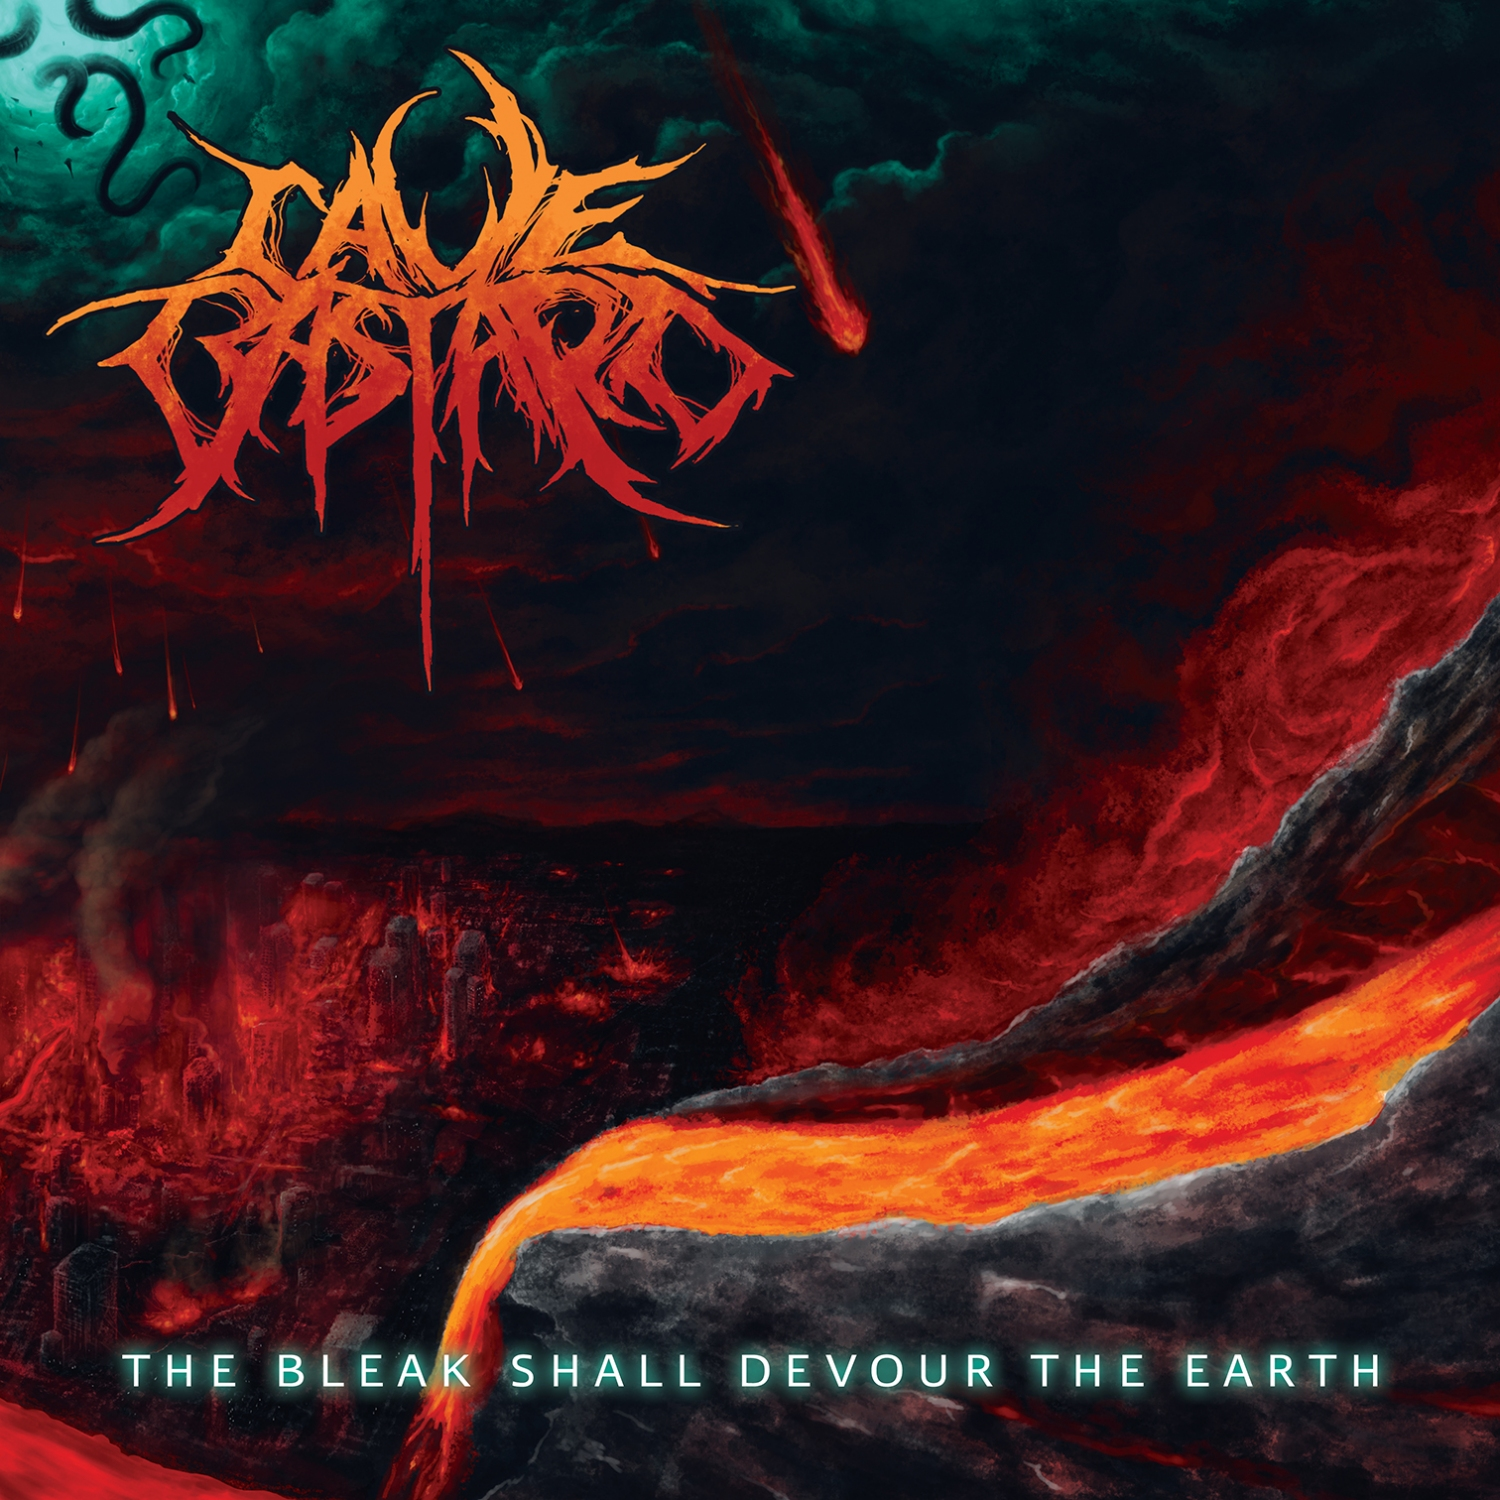 Cave Bastard - The Bleak Shall Devour the Earth 01